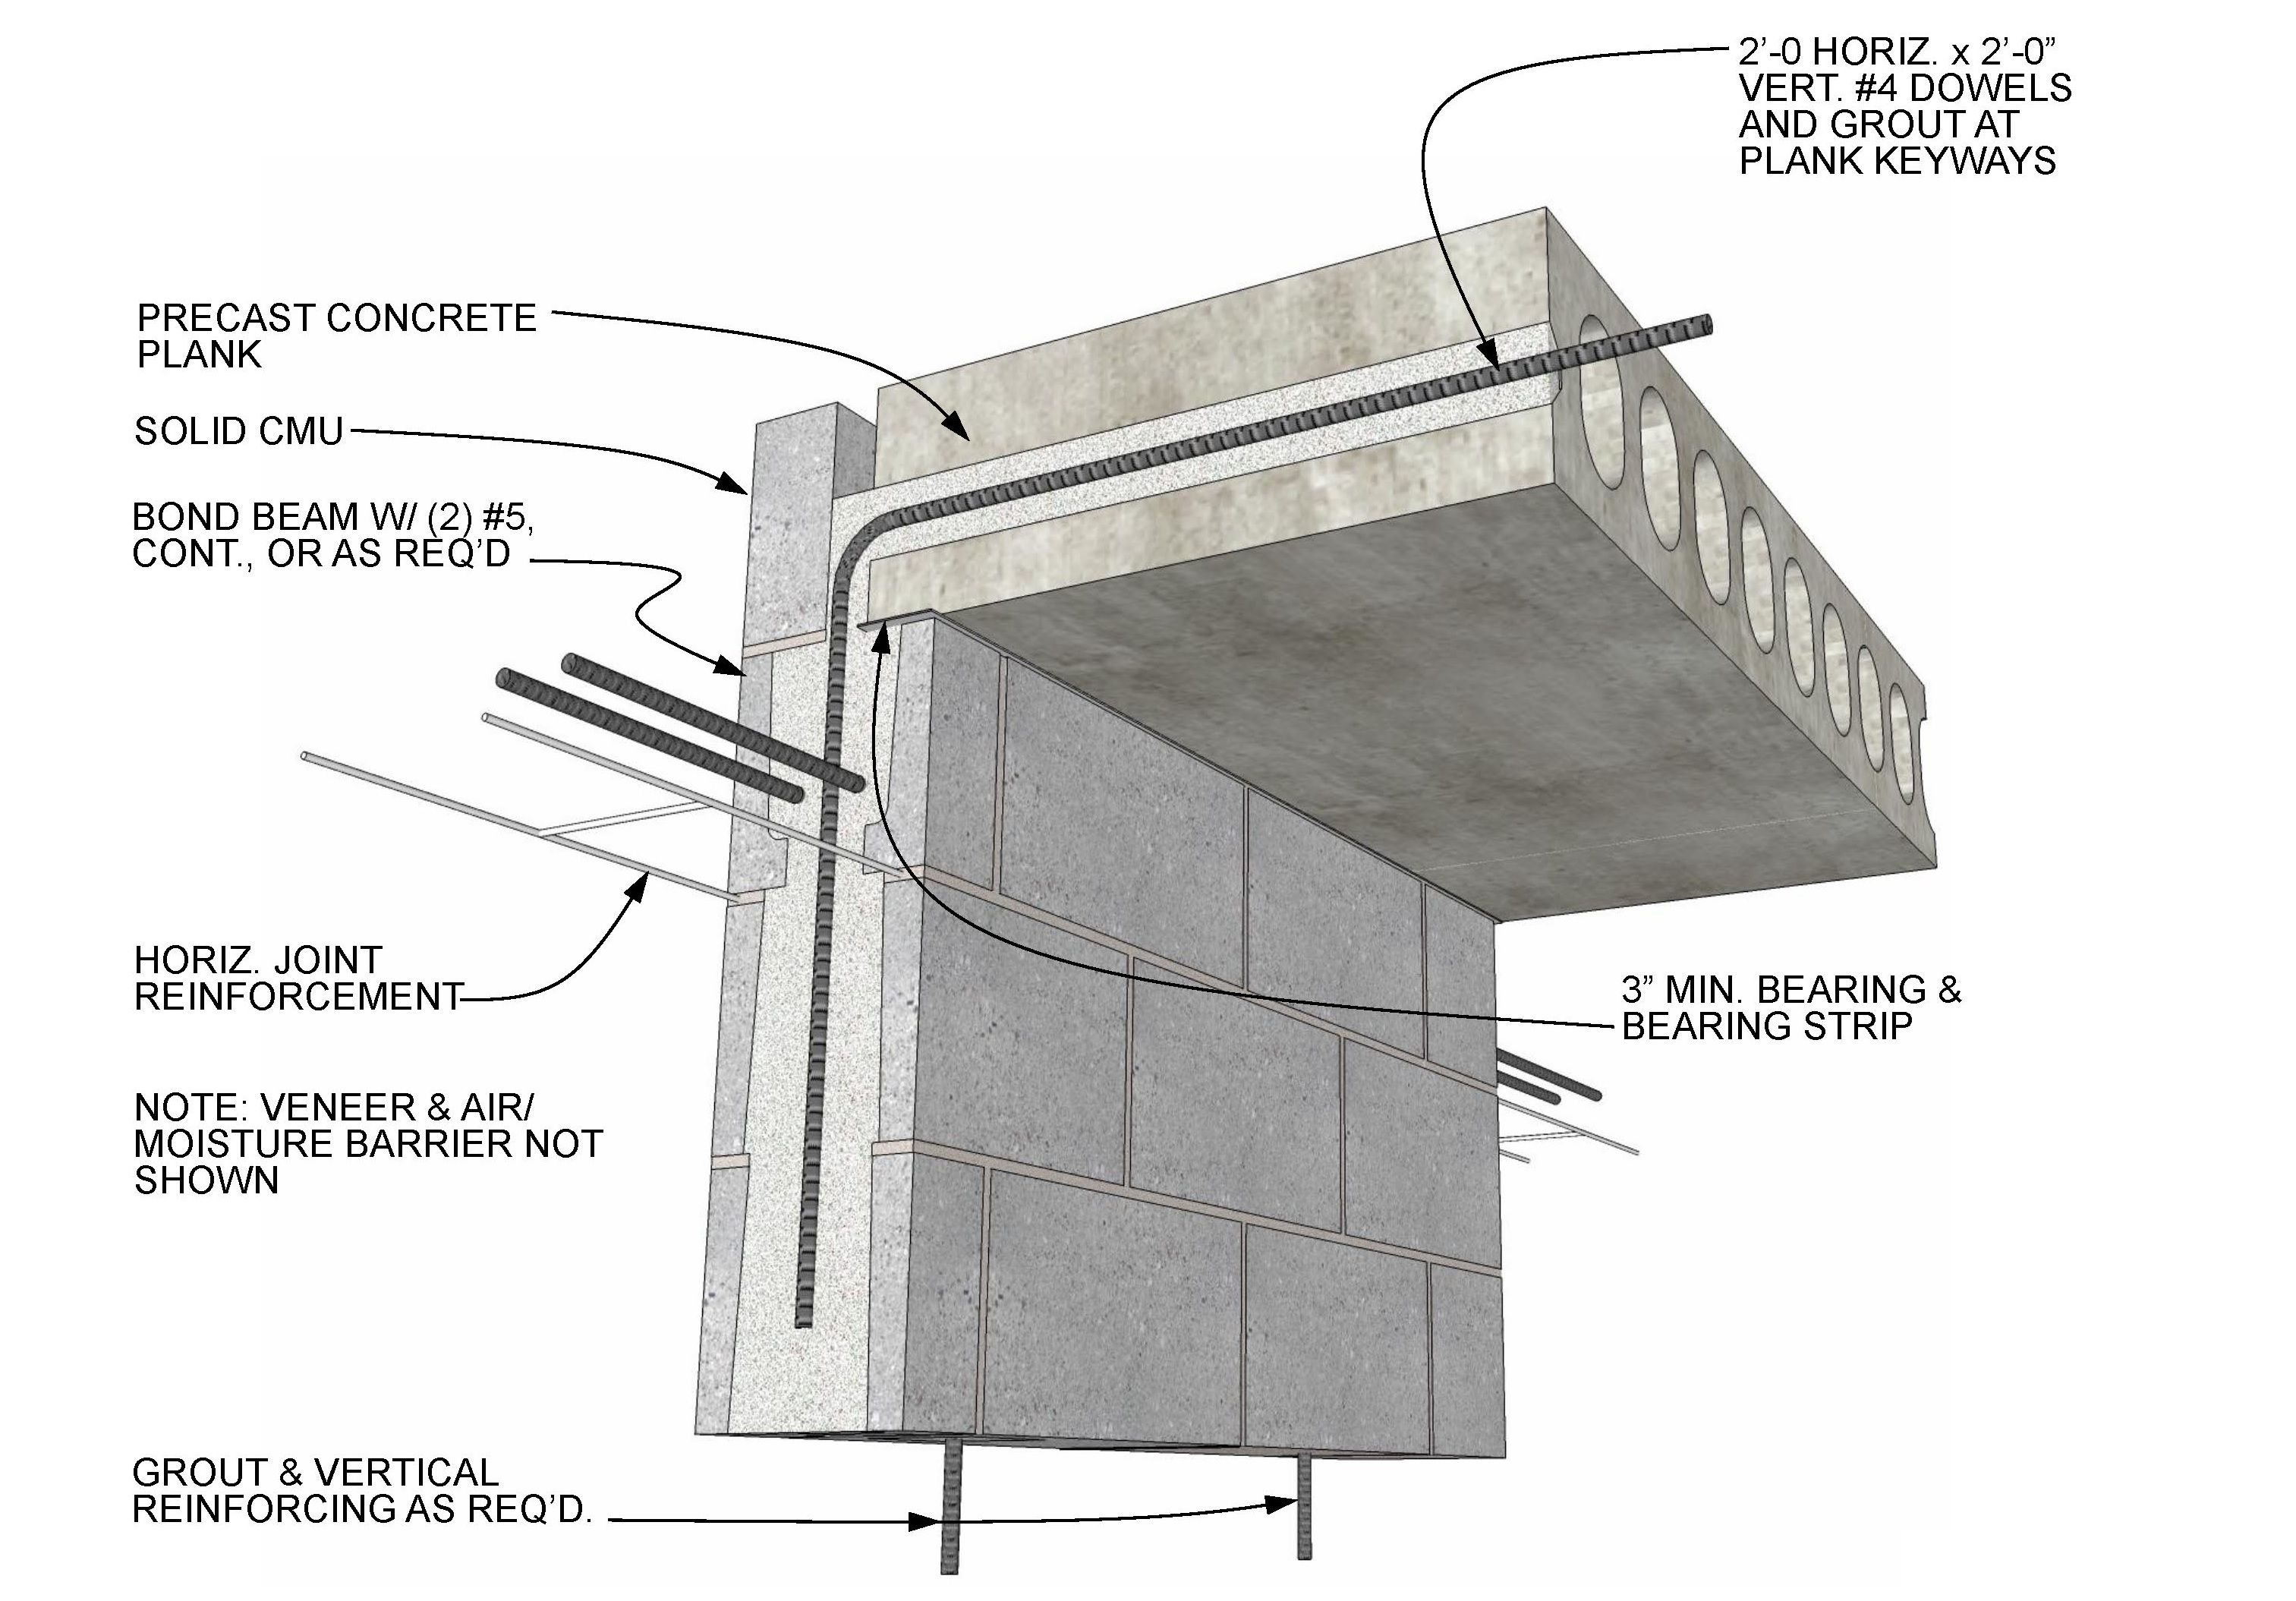 Concrete Forming Companies Ontario Gbc Concrete Forming In 2020 Concrete Retaining Walls Insulated Concrete Forms Concrete Forms